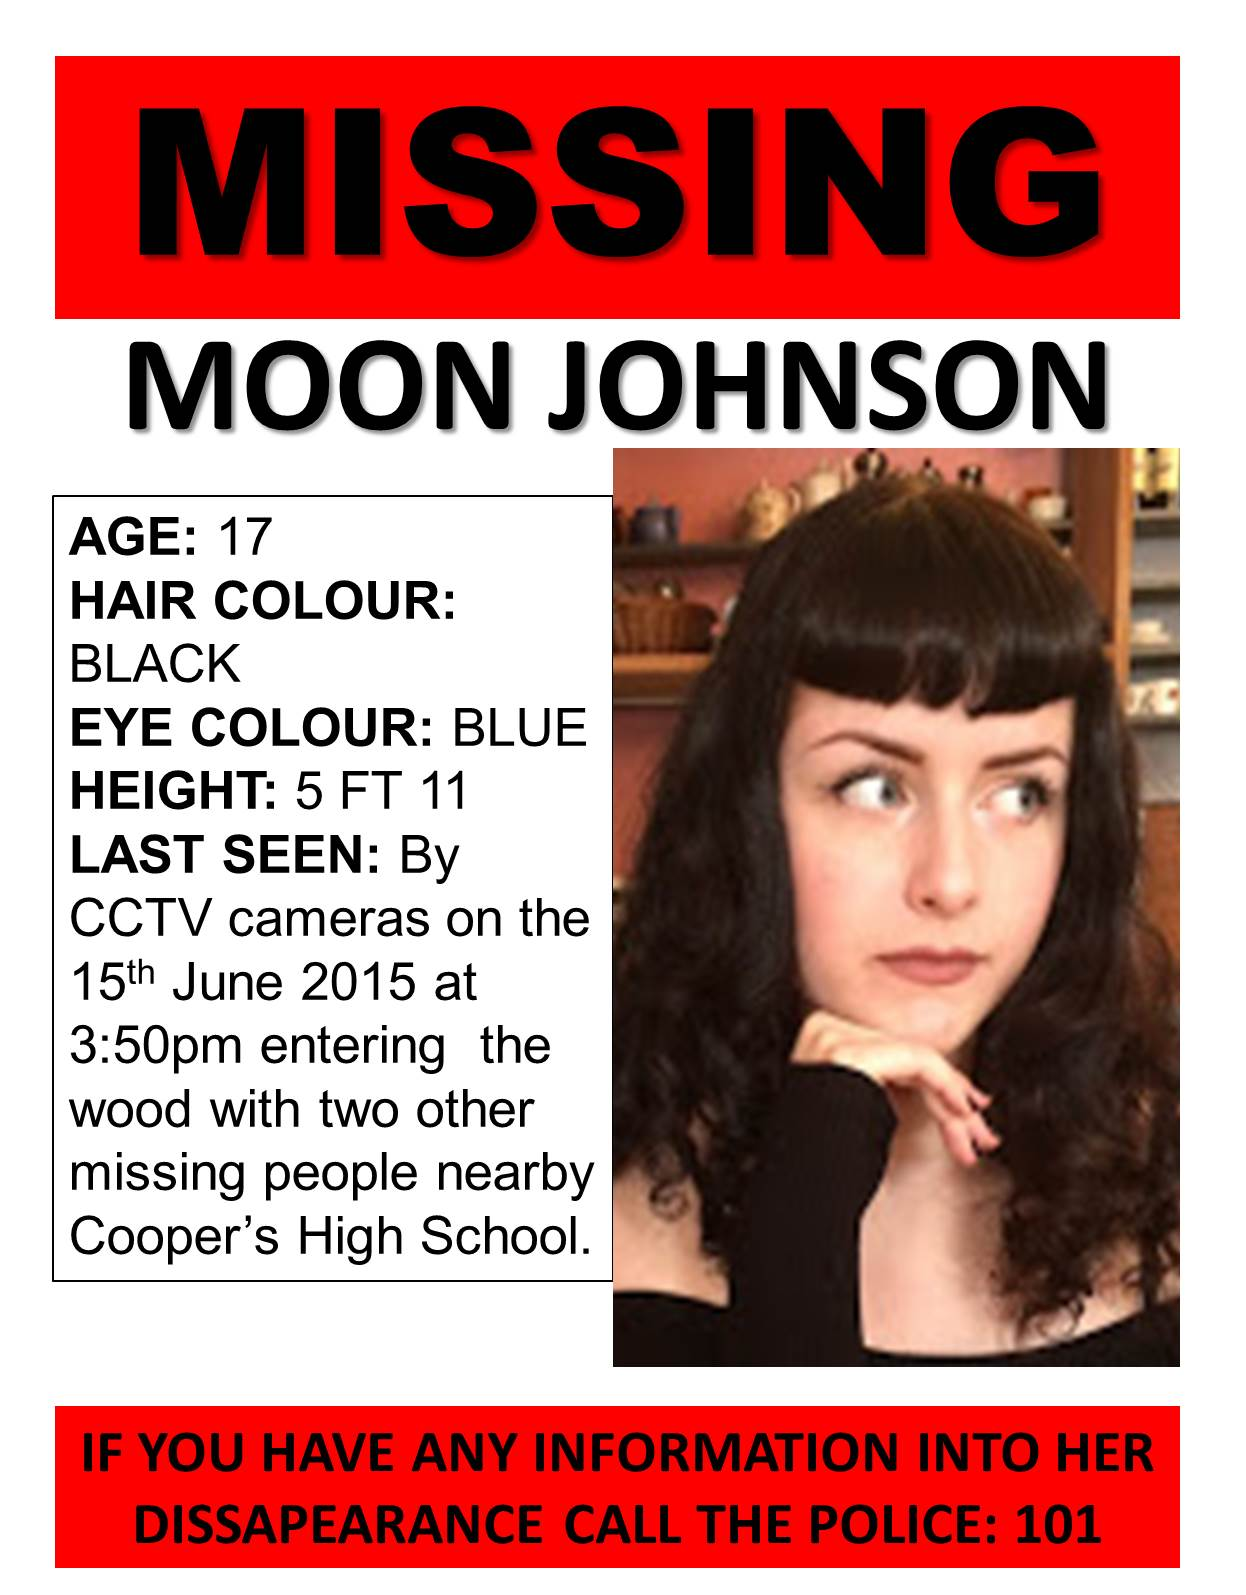 Lucy Day A2 Media Coursework Creating Missing Signs JOHNSON%2BPOSTER Mock  Up Missing Postershtml Missing Person Poster Generator  Missing Person Poster Generator